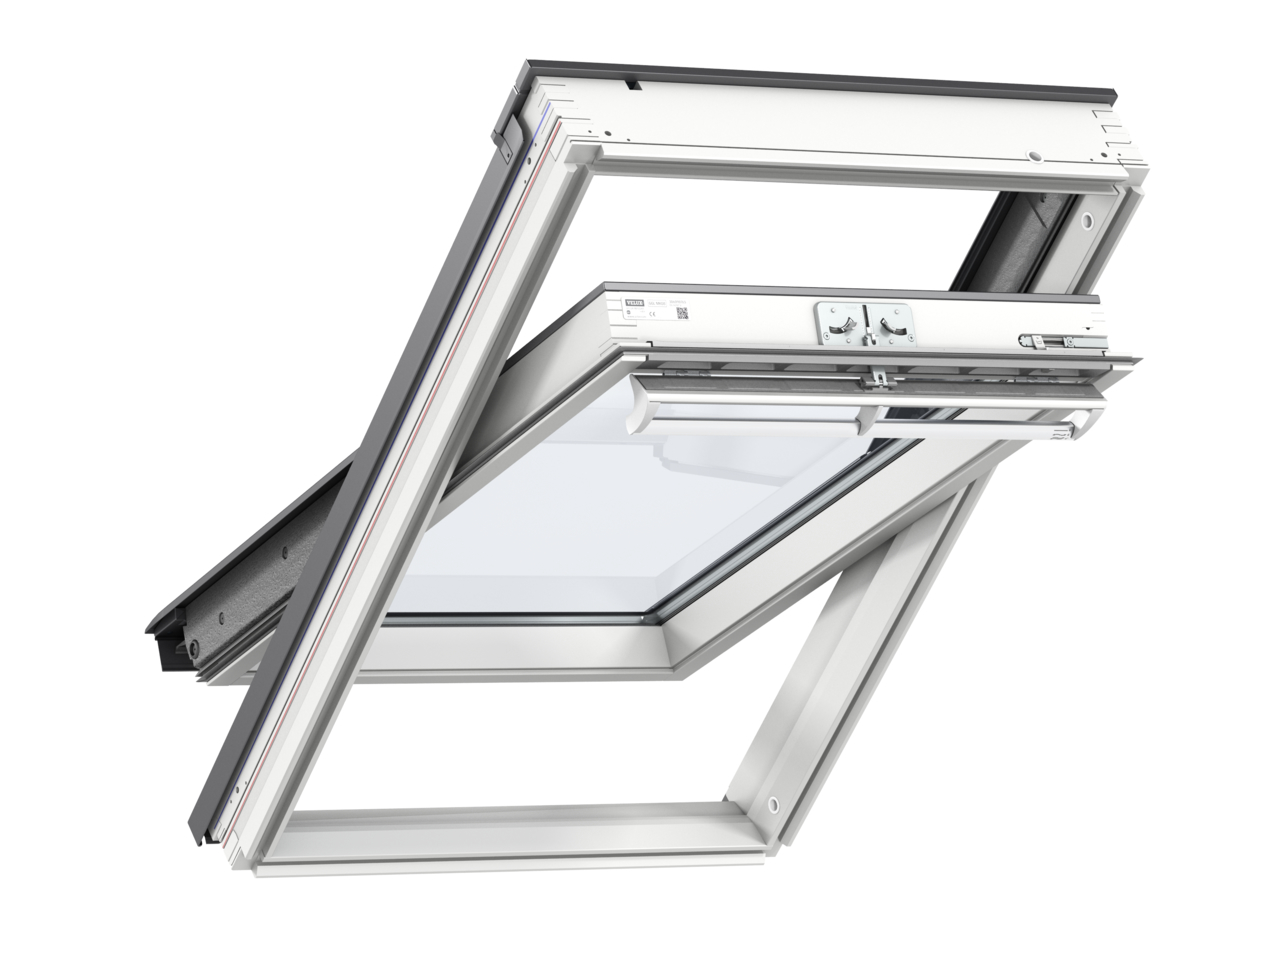 Velux GGL CK06 550 x 1180mm Centre Pivot 60Pane Roof Window - White Painted